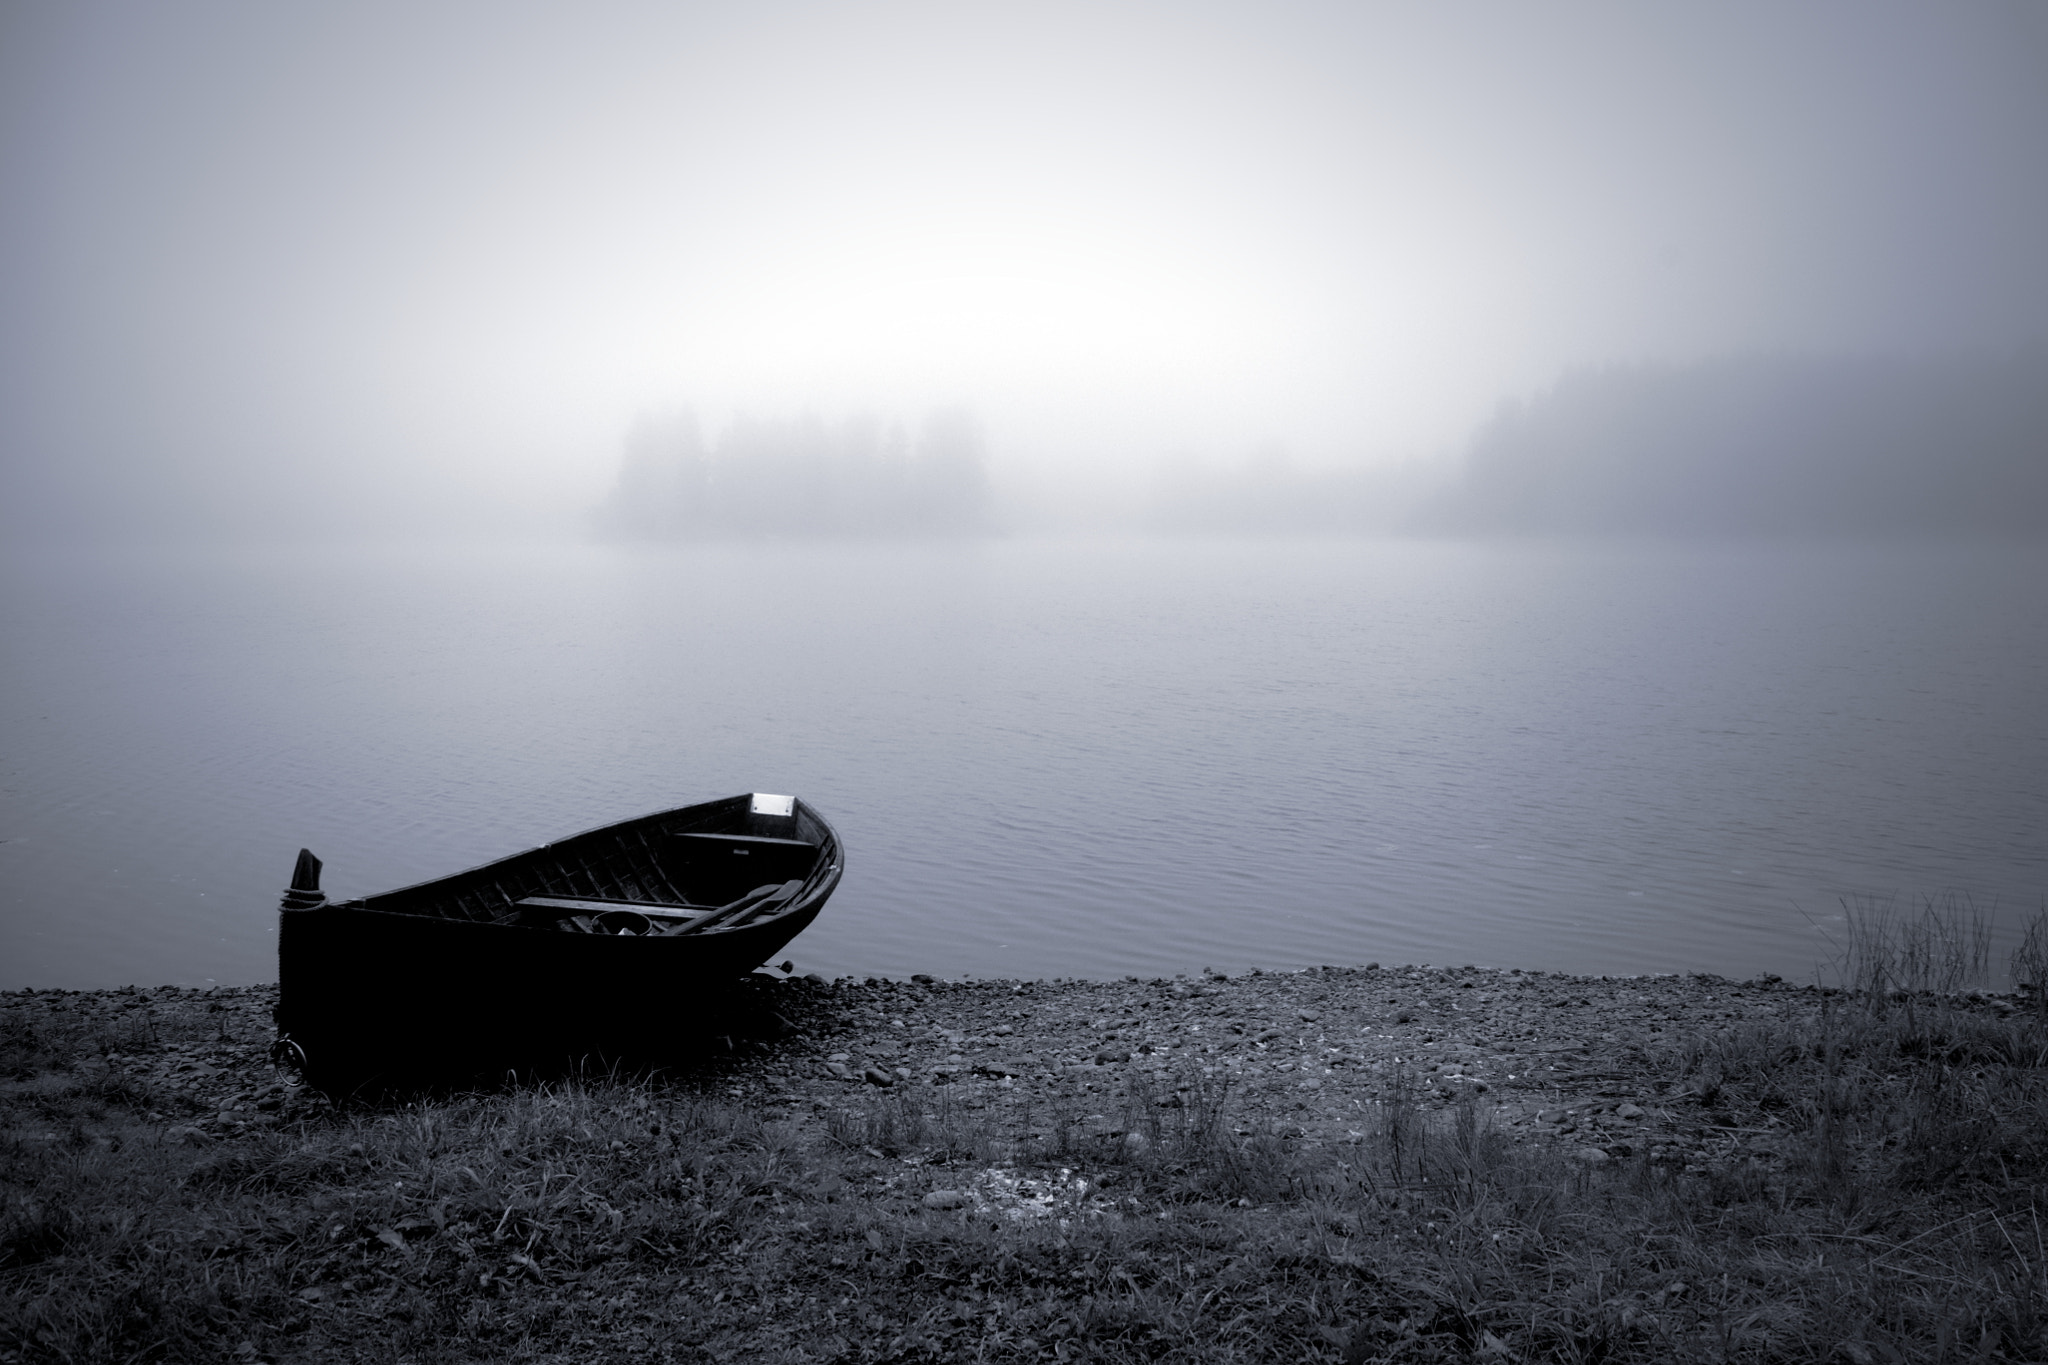 Photograph Lonely Boat by Petri Damstén on 500px